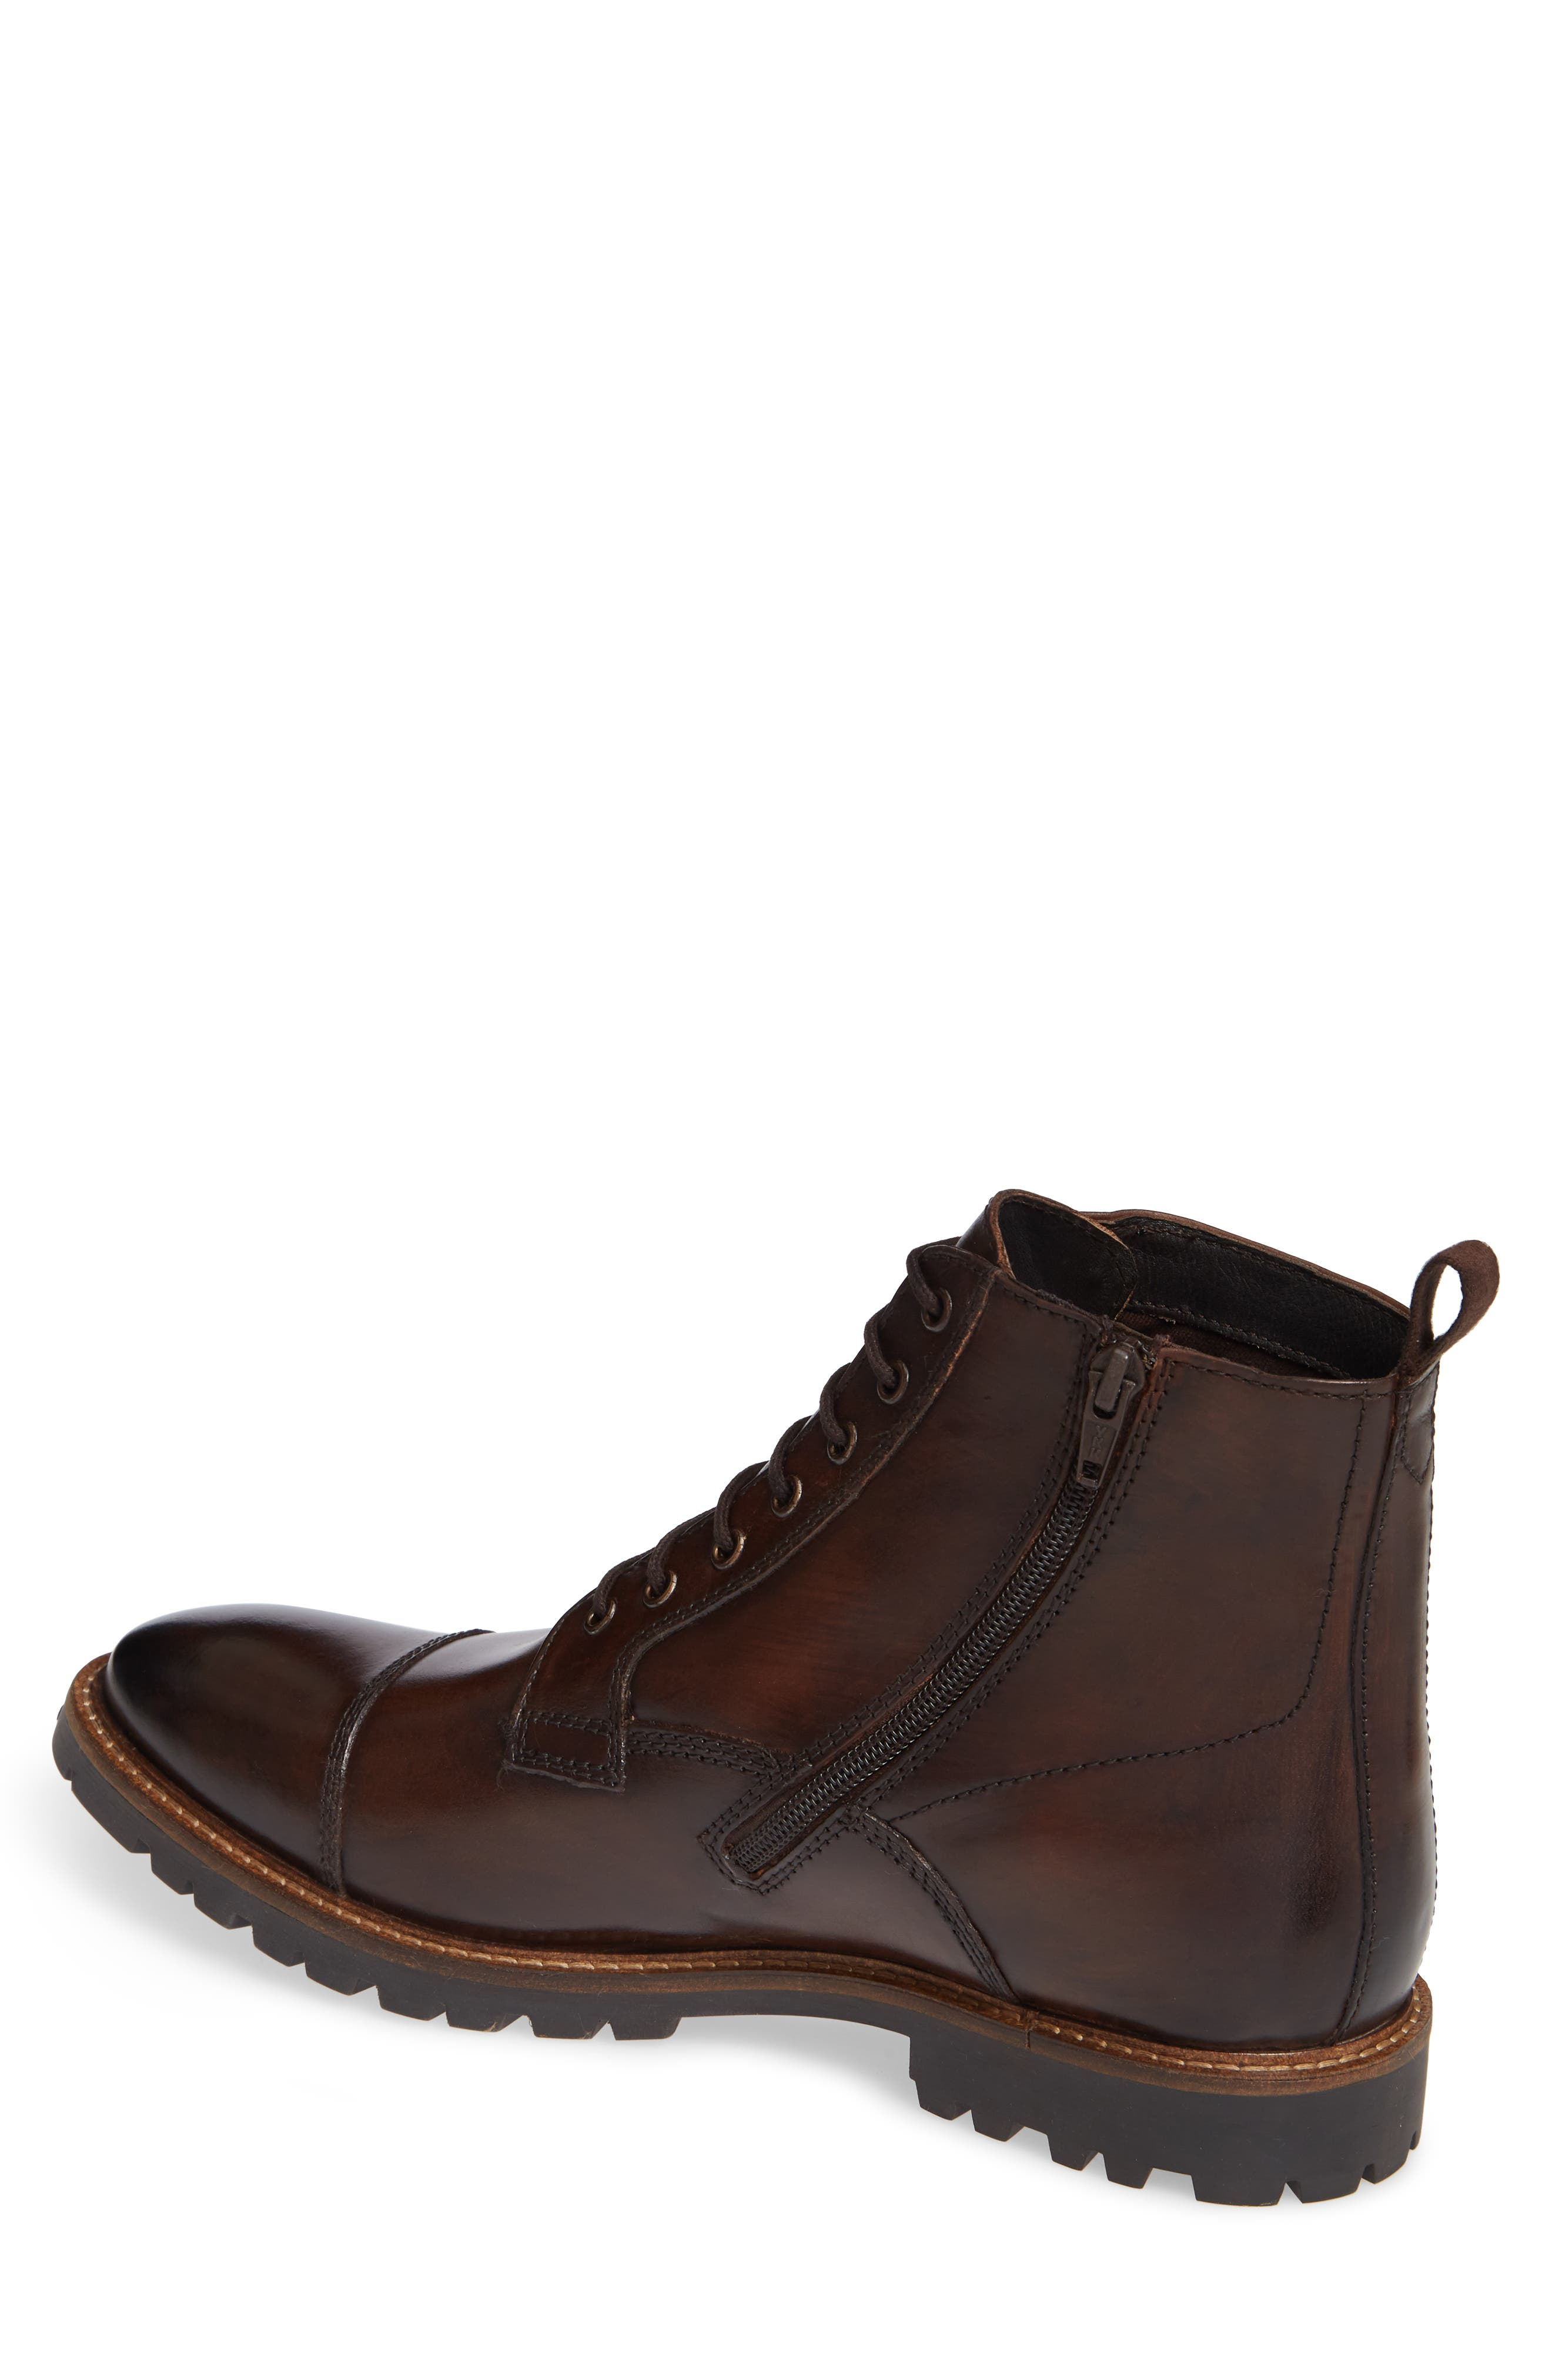 Lugged Cap Toe Boot,                             Alternate thumbnail 2, color,                             BROWN